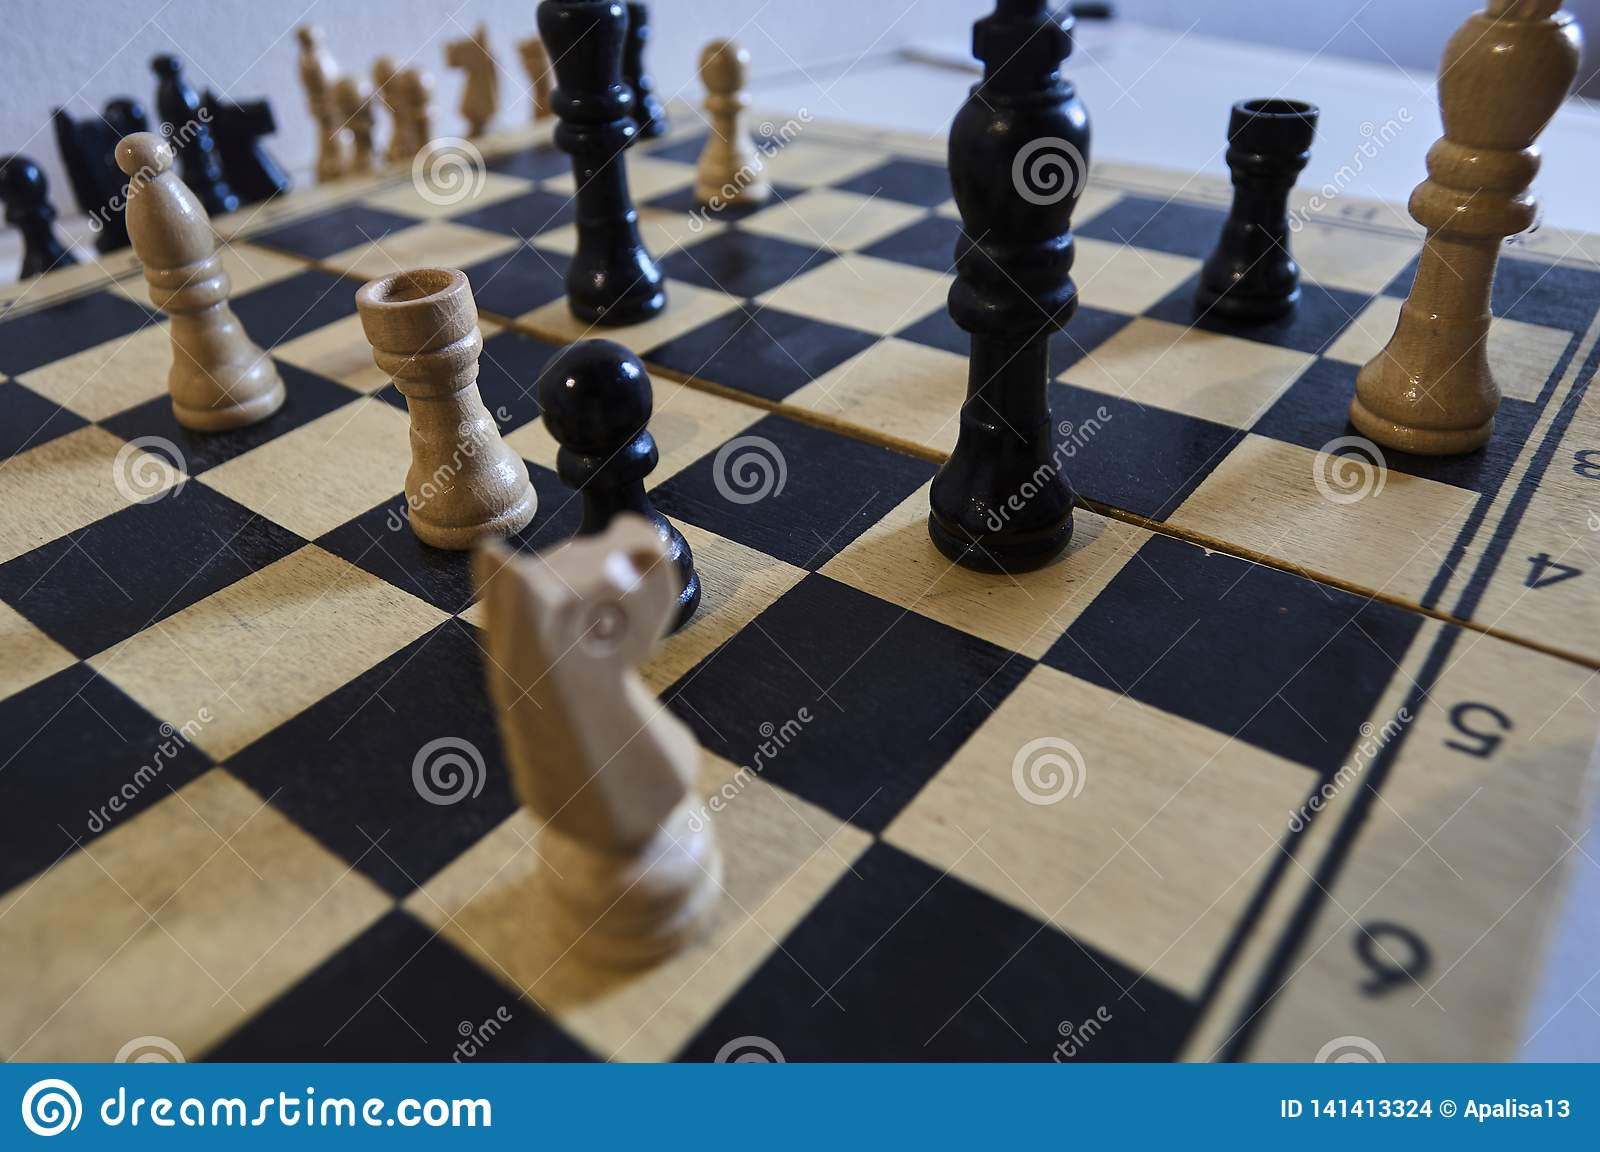 Game of chess, white king in trouble, horse in trouble, checkmate in one move